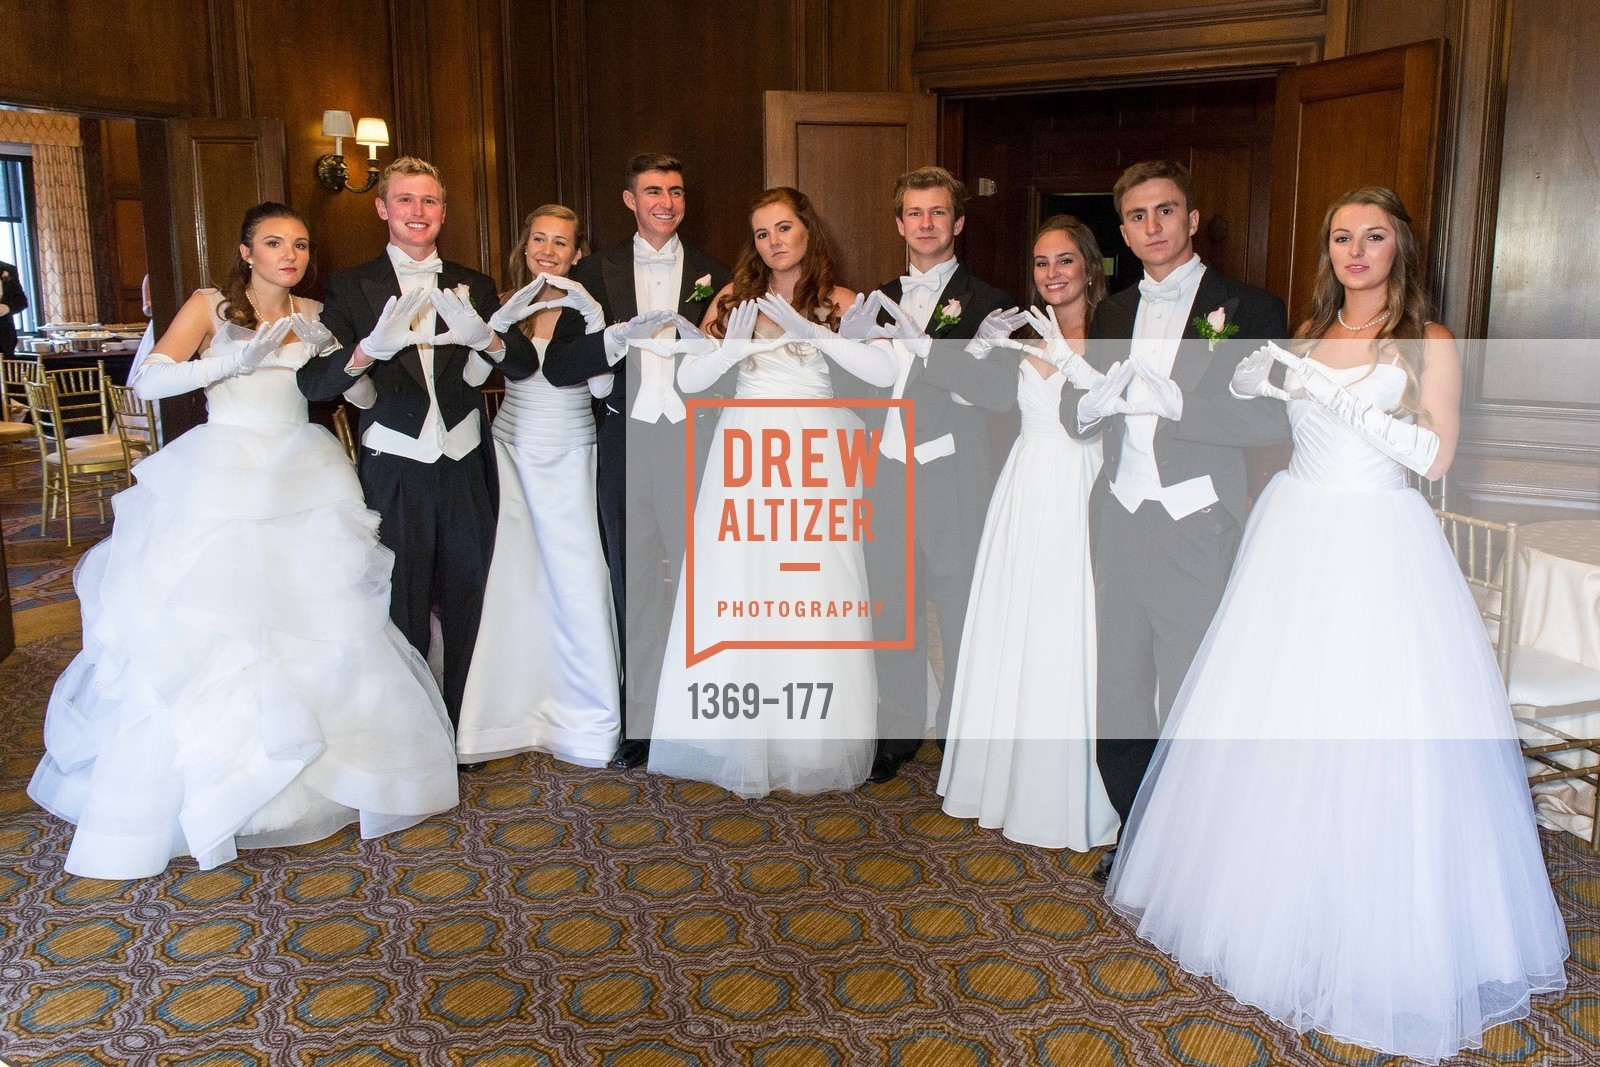 Hannah Baylis, Luca Sullivan, Sarah Jackmauh, Eli Schwartz, Kendall Finnegan, TJ Polite, Hailey Cusack, Jack Kariotis, Rachael Jayne Maier, The 2015 San Francisco Debutante Ball, The Westin St. Francis San Francisco Union Square. 335 Powell St, June 20th, 2015,Drew Altizer, Drew Altizer Photography, full-service agency, private events, San Francisco photographer, photographer california